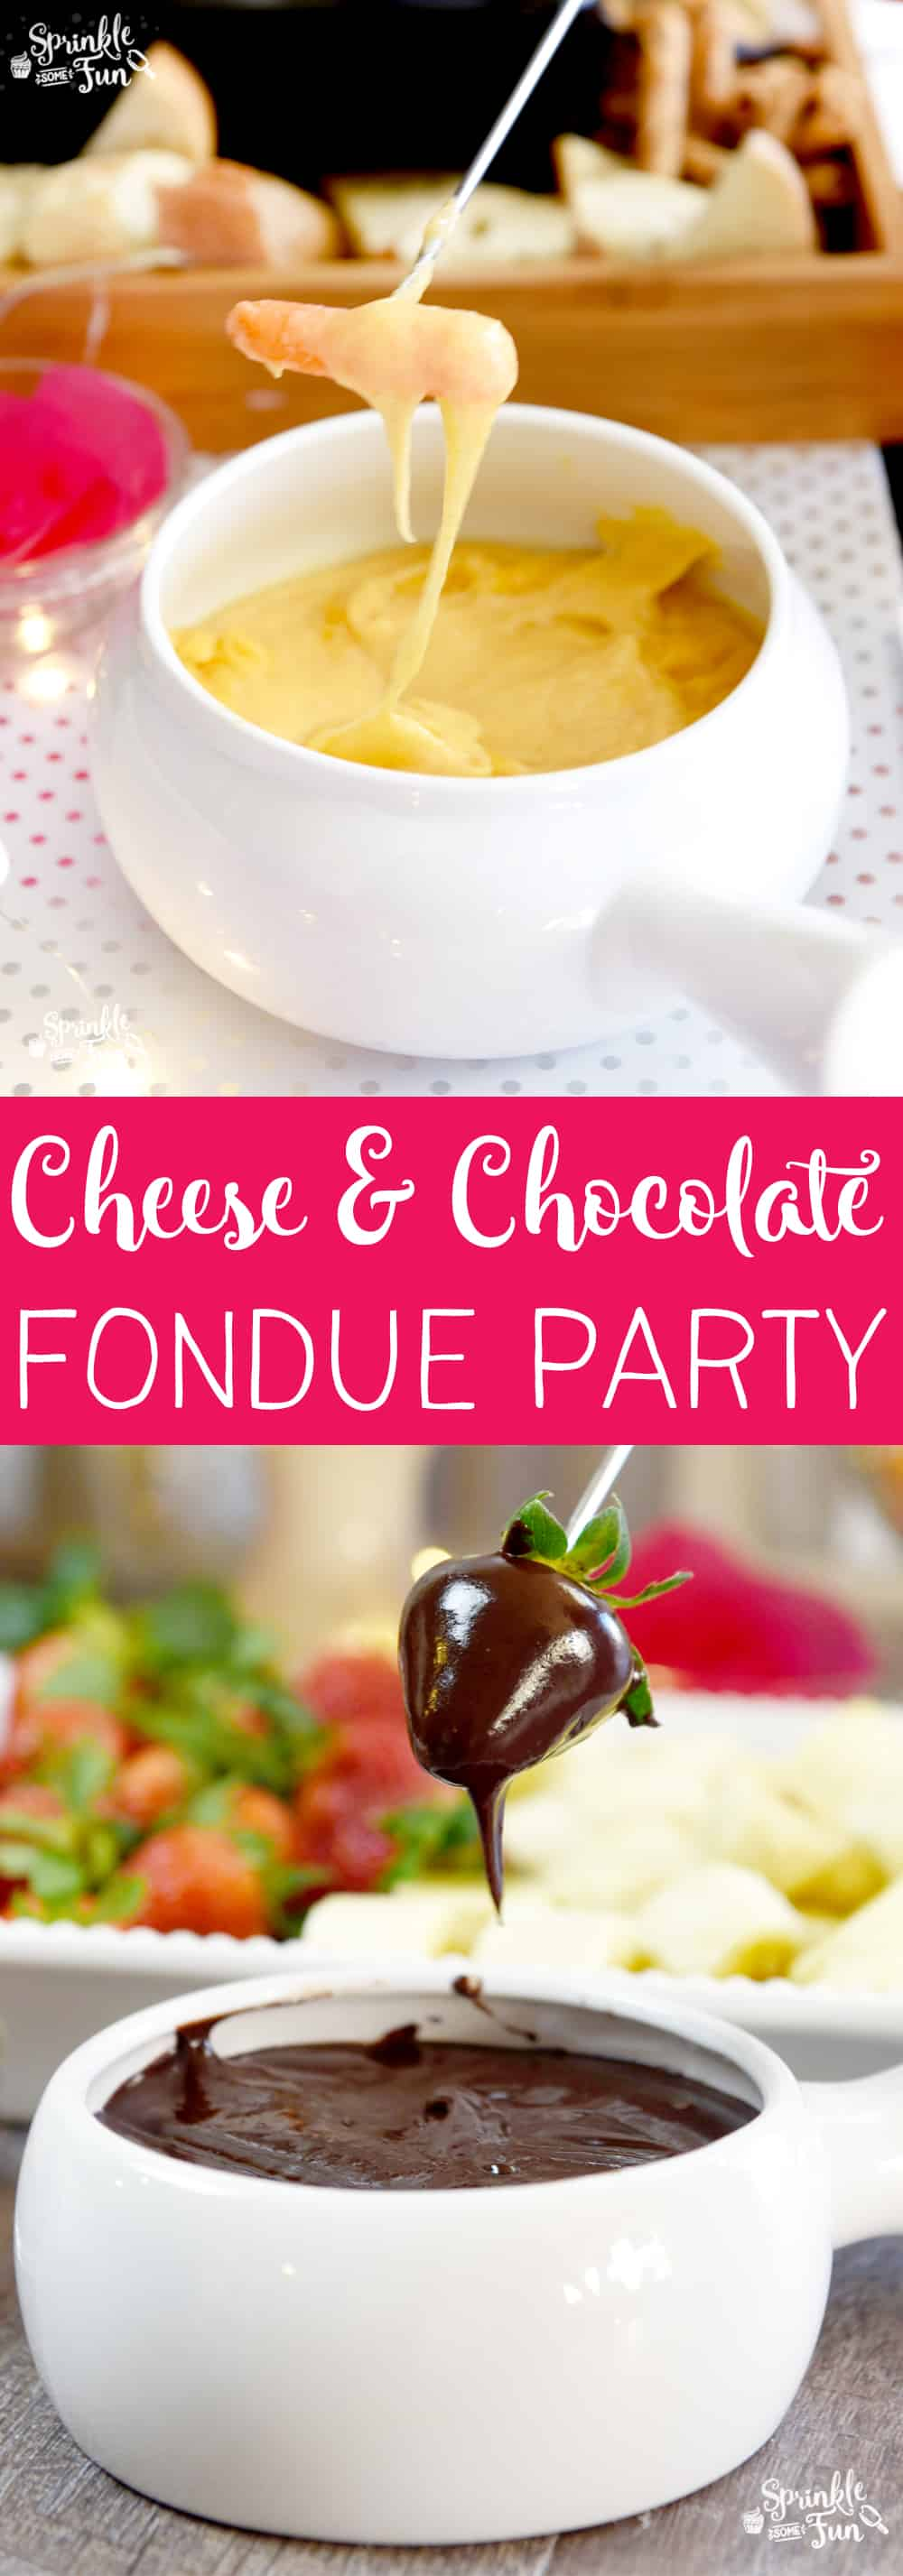 Cheese & Chocolate Fondue Party - Sprinkle Some Fun